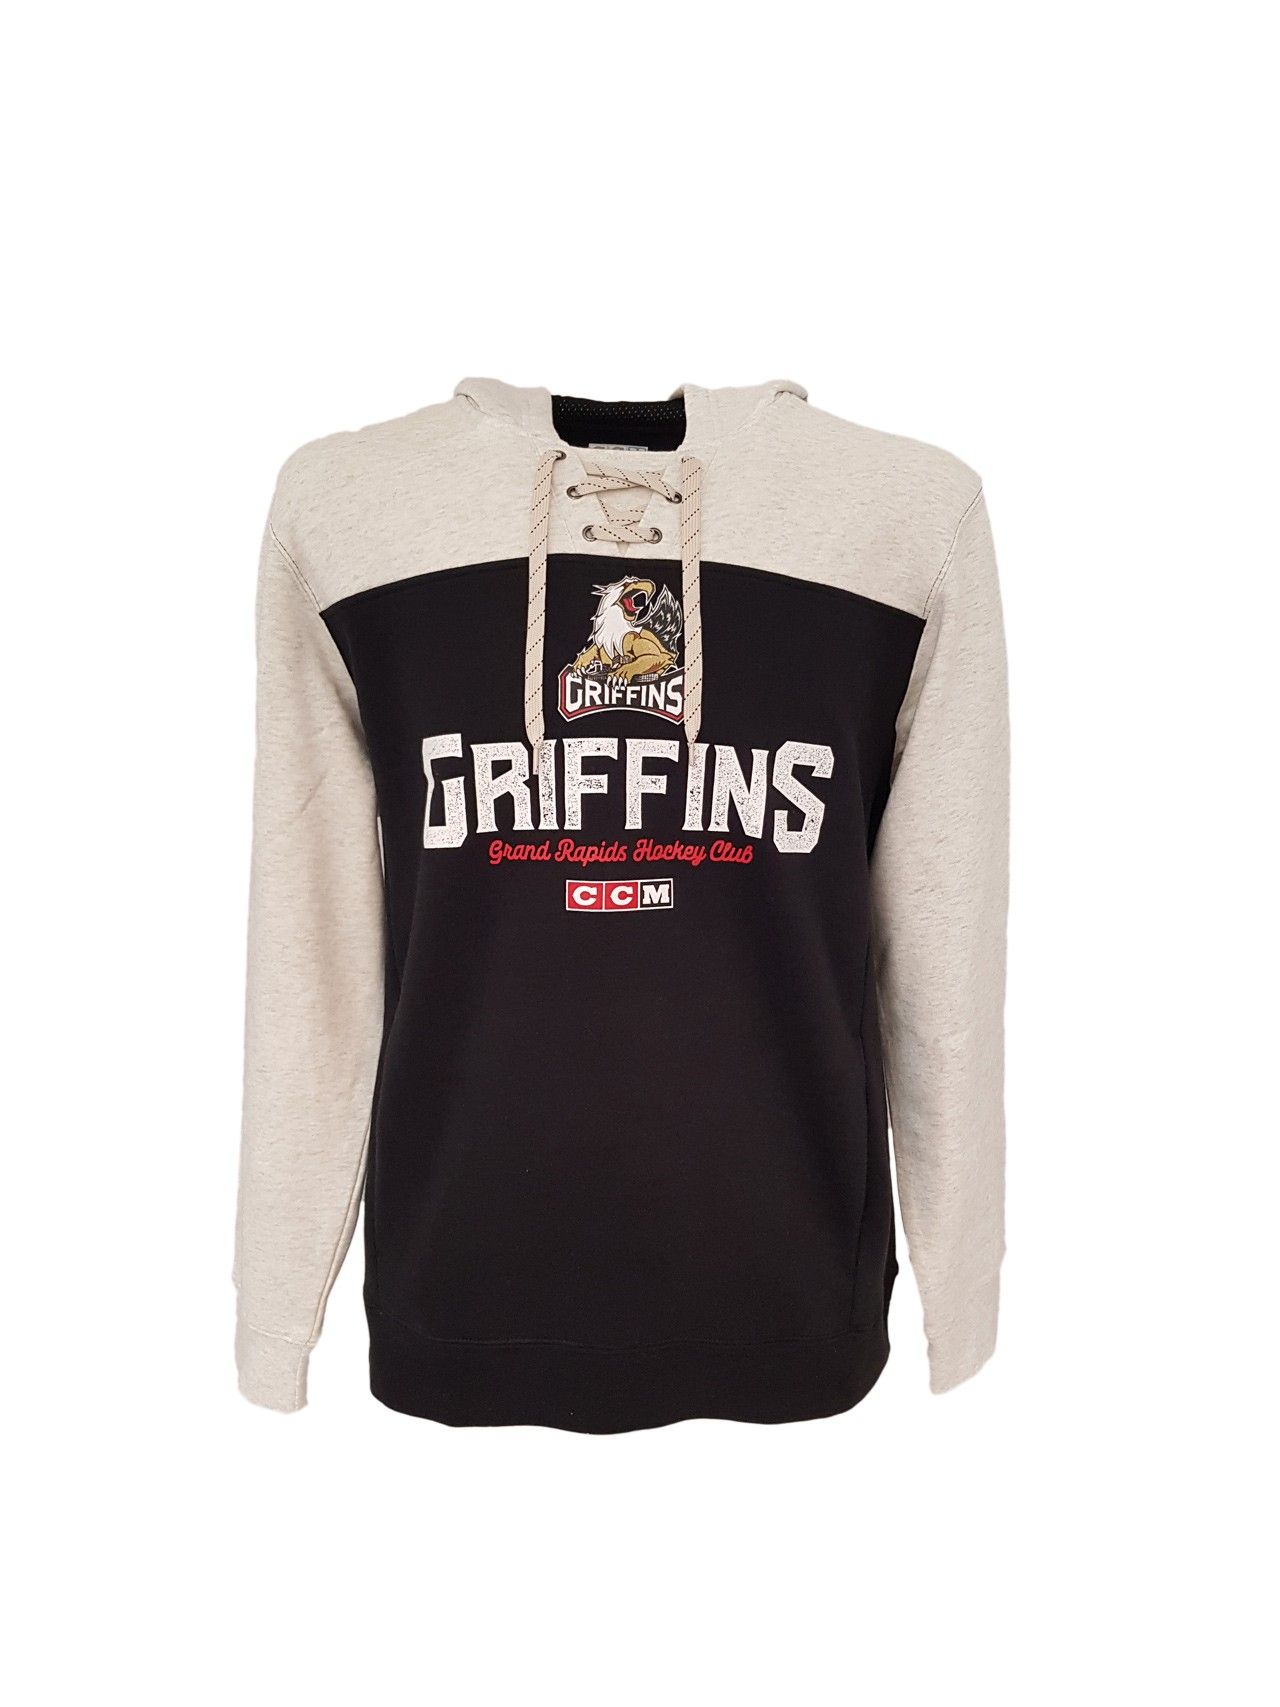 CCM Griffins Adult Pullover Hoodie